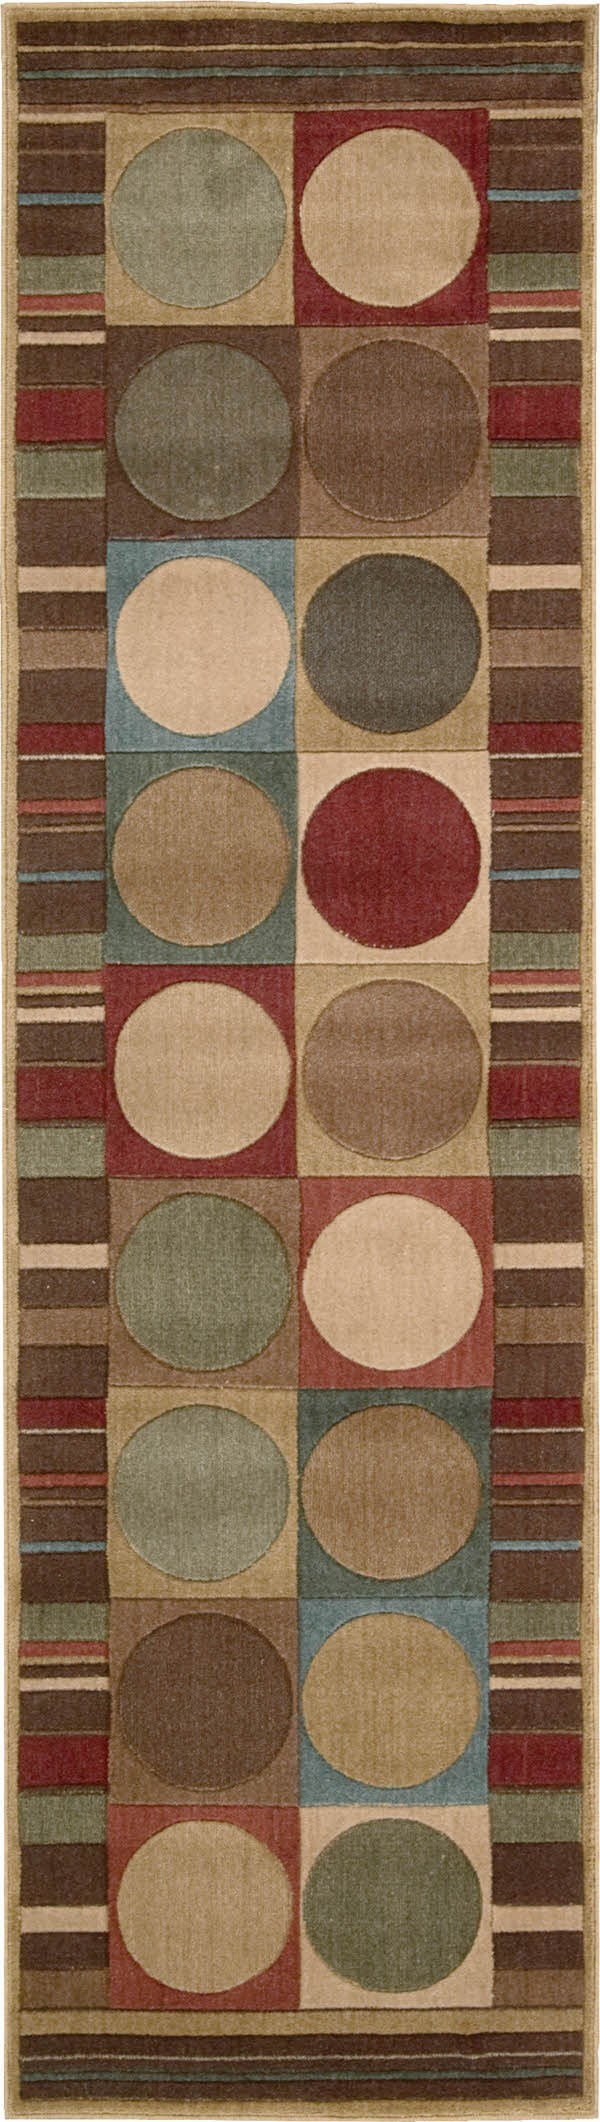 Red, Brown Contemporary / Modern Area Rug